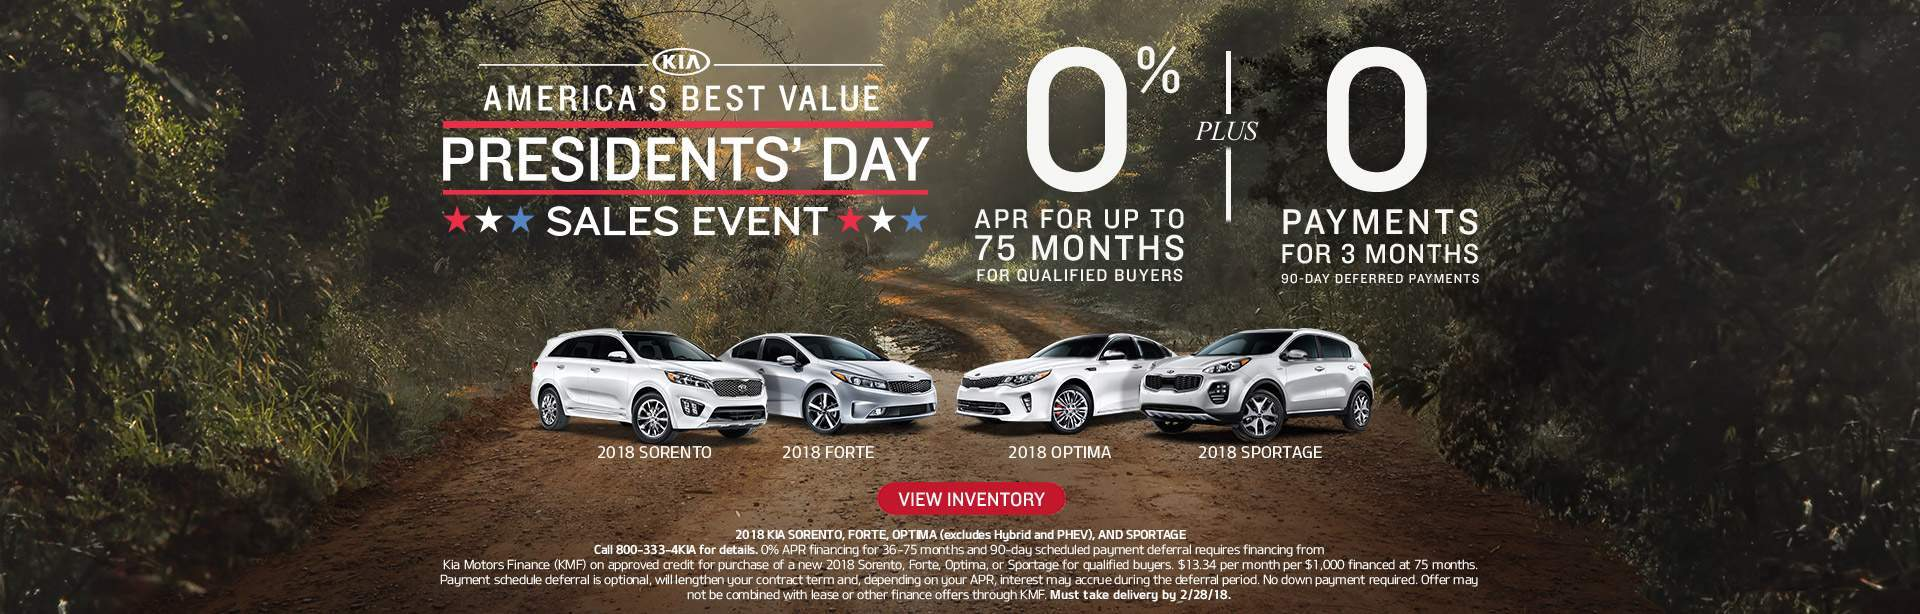 Presidents Day Sales Event at Earnhardt Kia